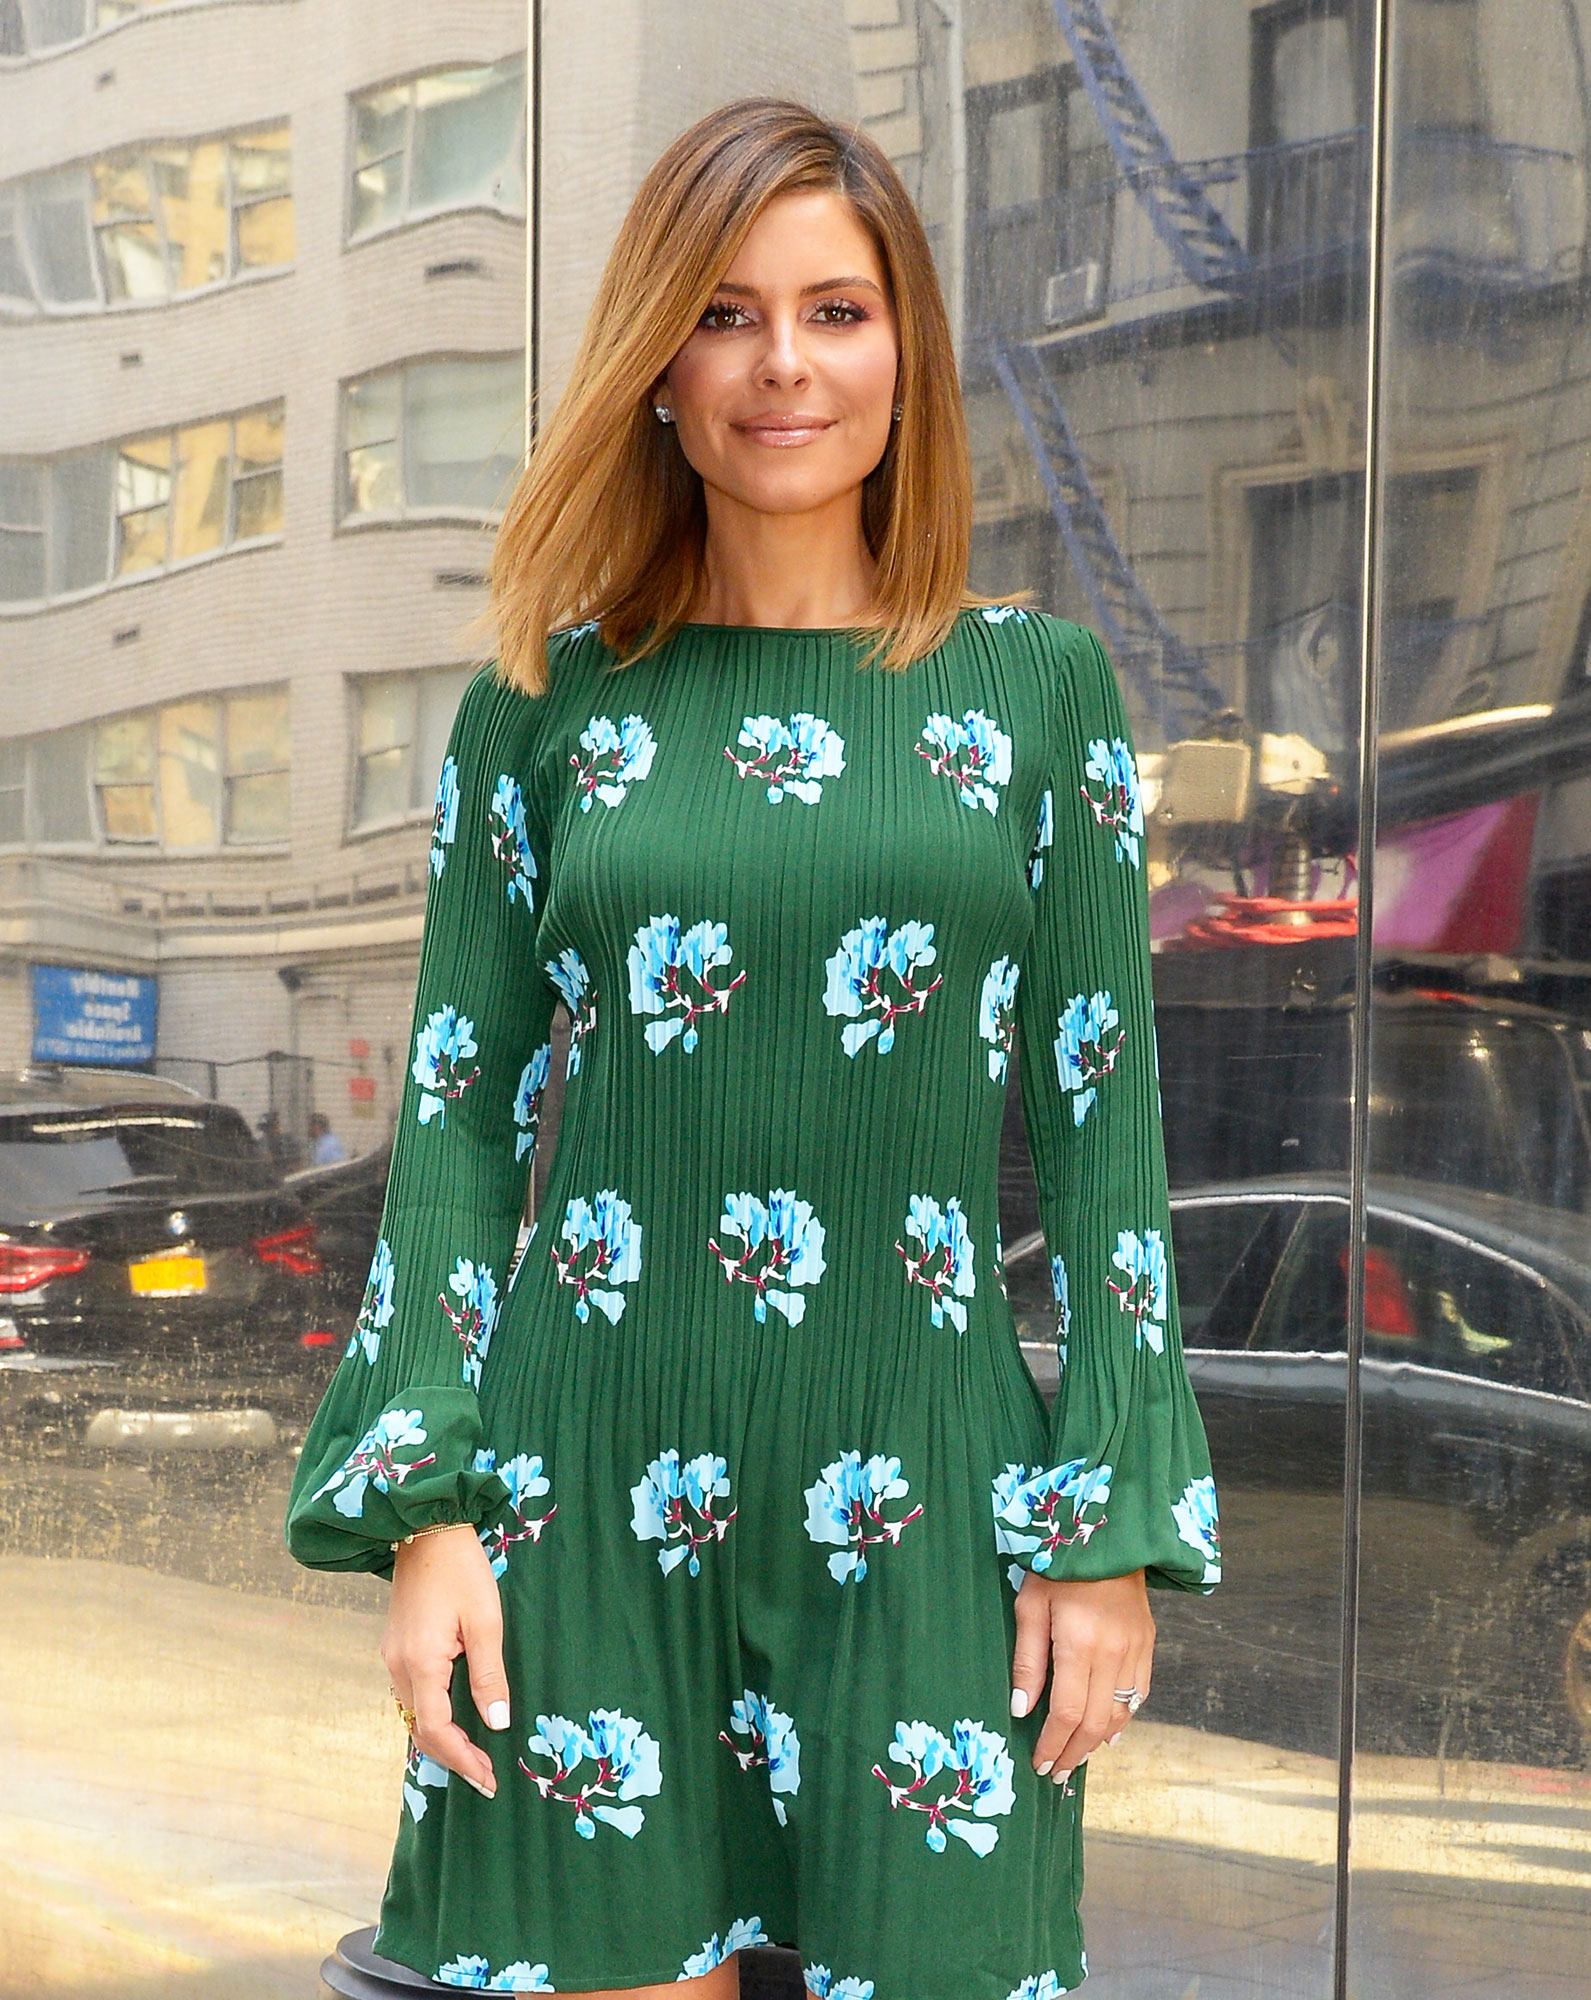 Maria Menounos - The TV personality and her husband, Kevin Undergaro, hope to welcome a child via a surrogate. Pal Kim Kardashian, who used a surrogate with her third child, has been walking Menounos through the process.